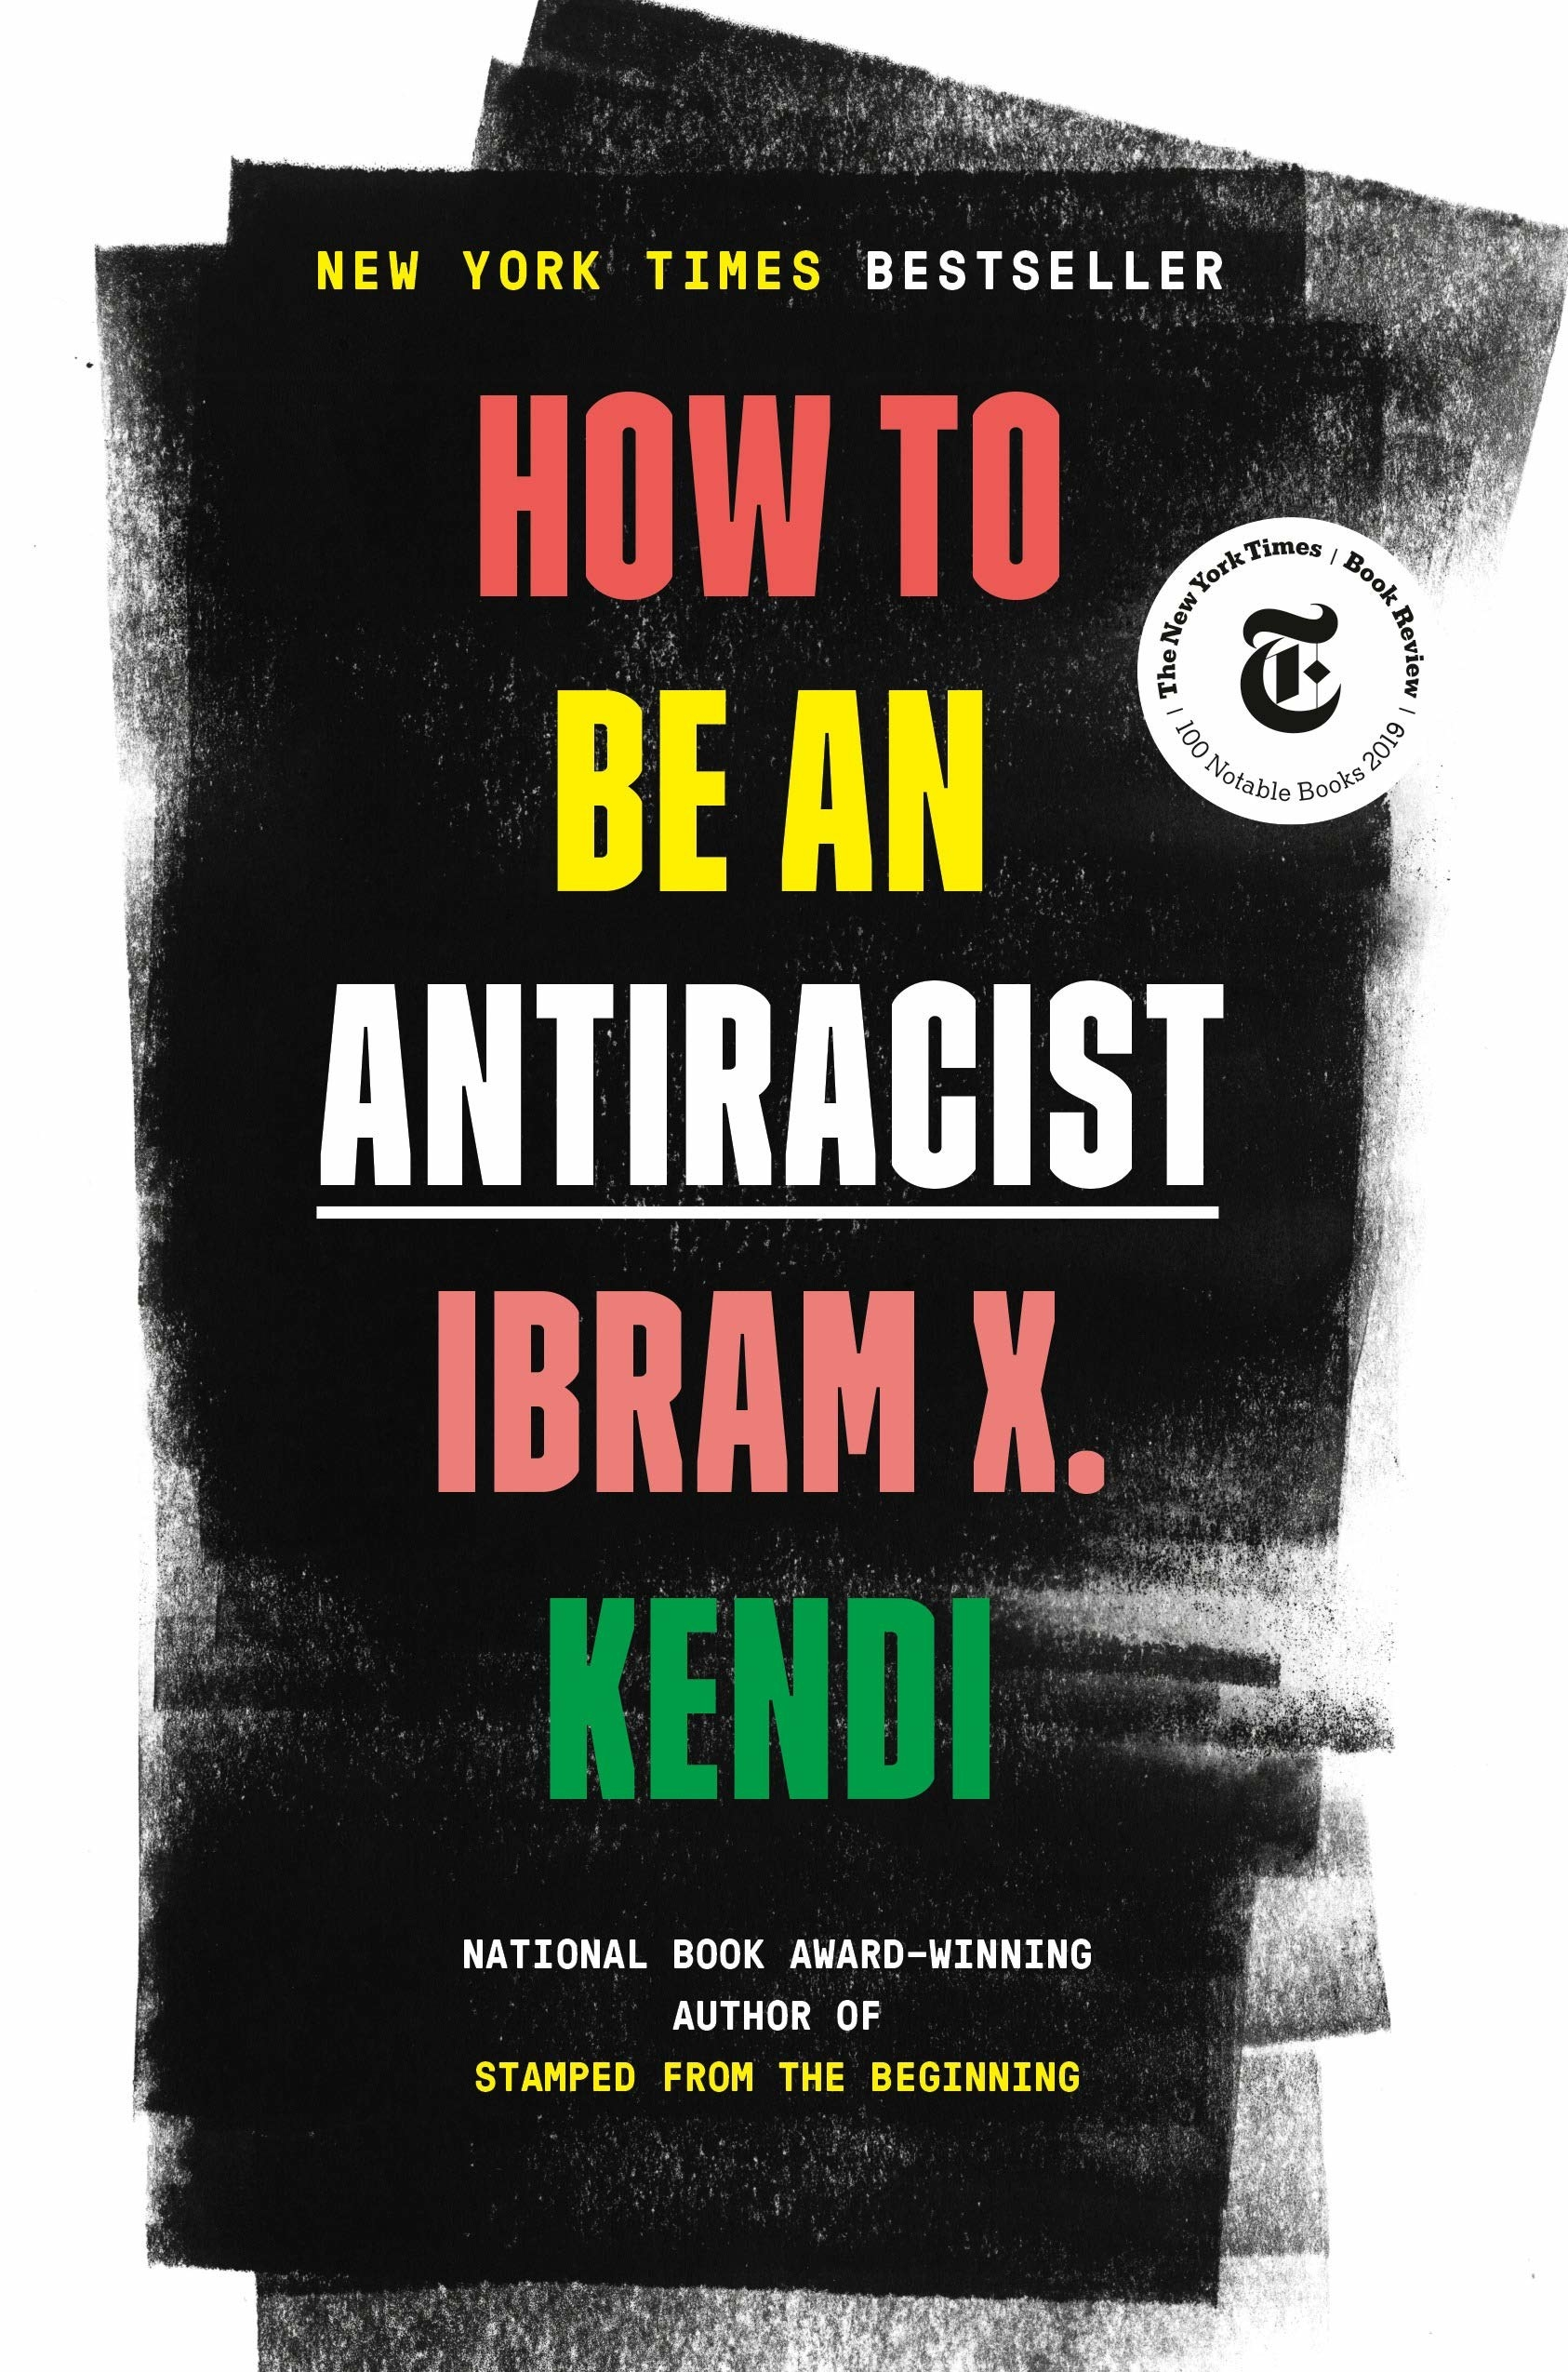 The cover of How to Be an Antiracist.